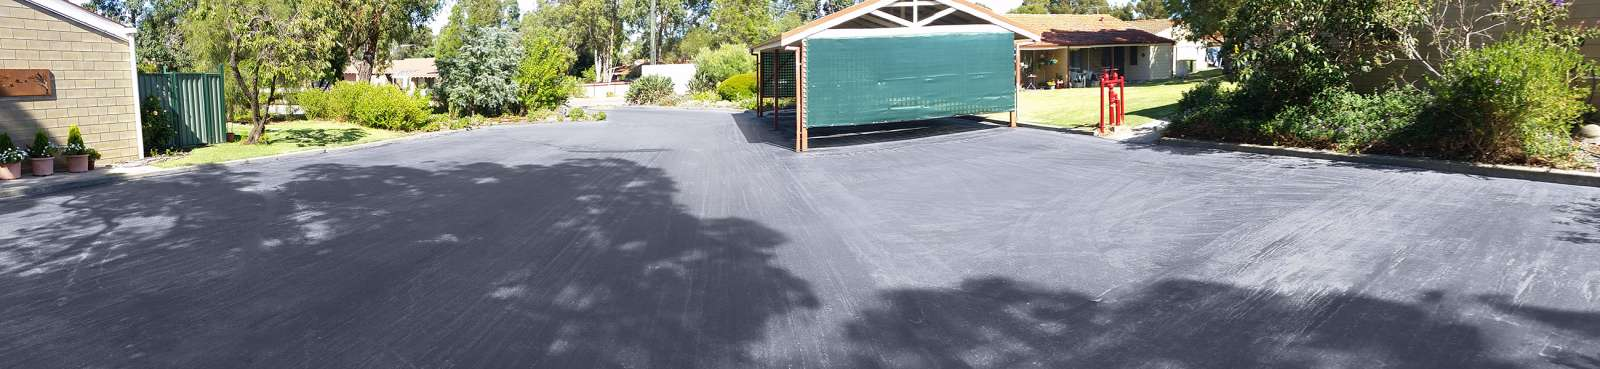 New Commercial Driveway in Darlington | NK Asphalt